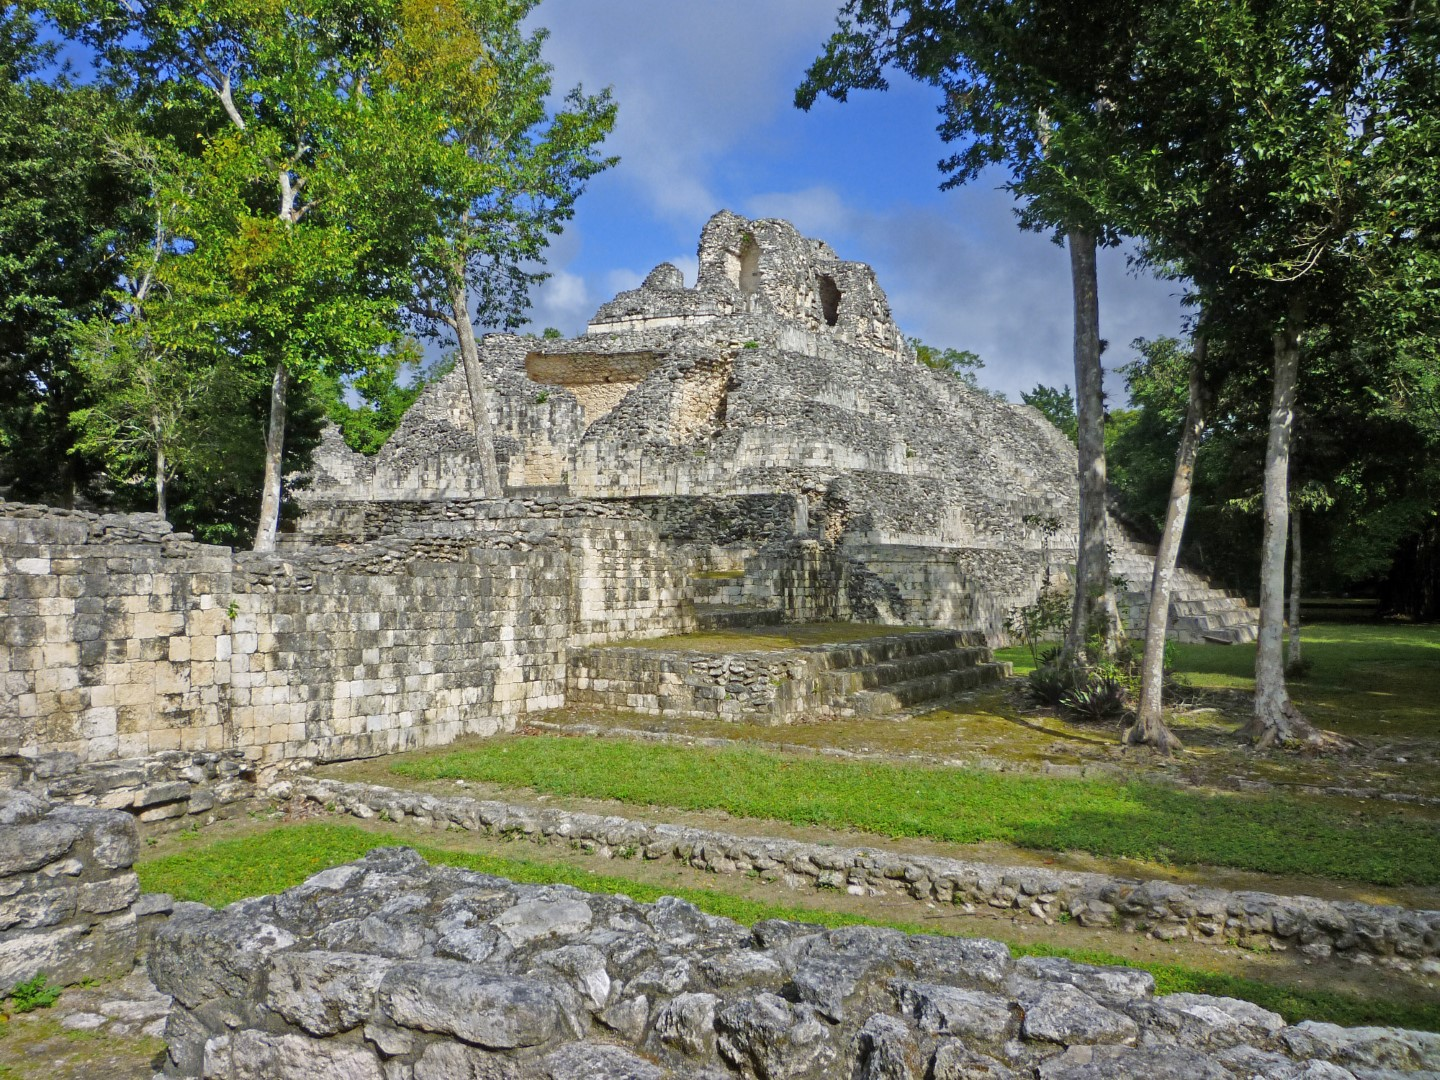 Mayan ruins at Calakmul in Mexico